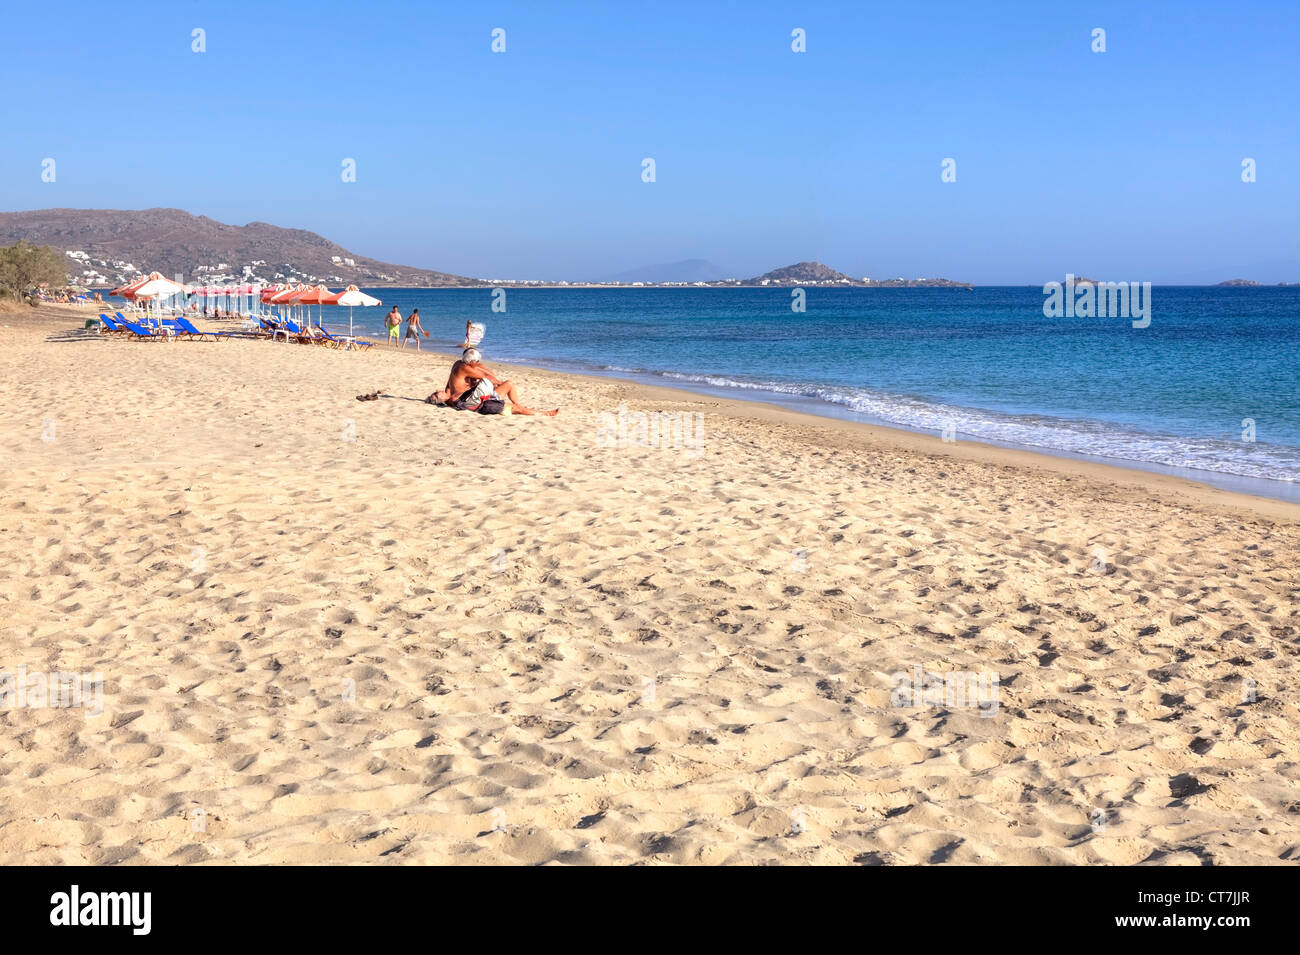 endless sandy beaches, not crowded, in Plaka, Naxos, Greece - Stock Image